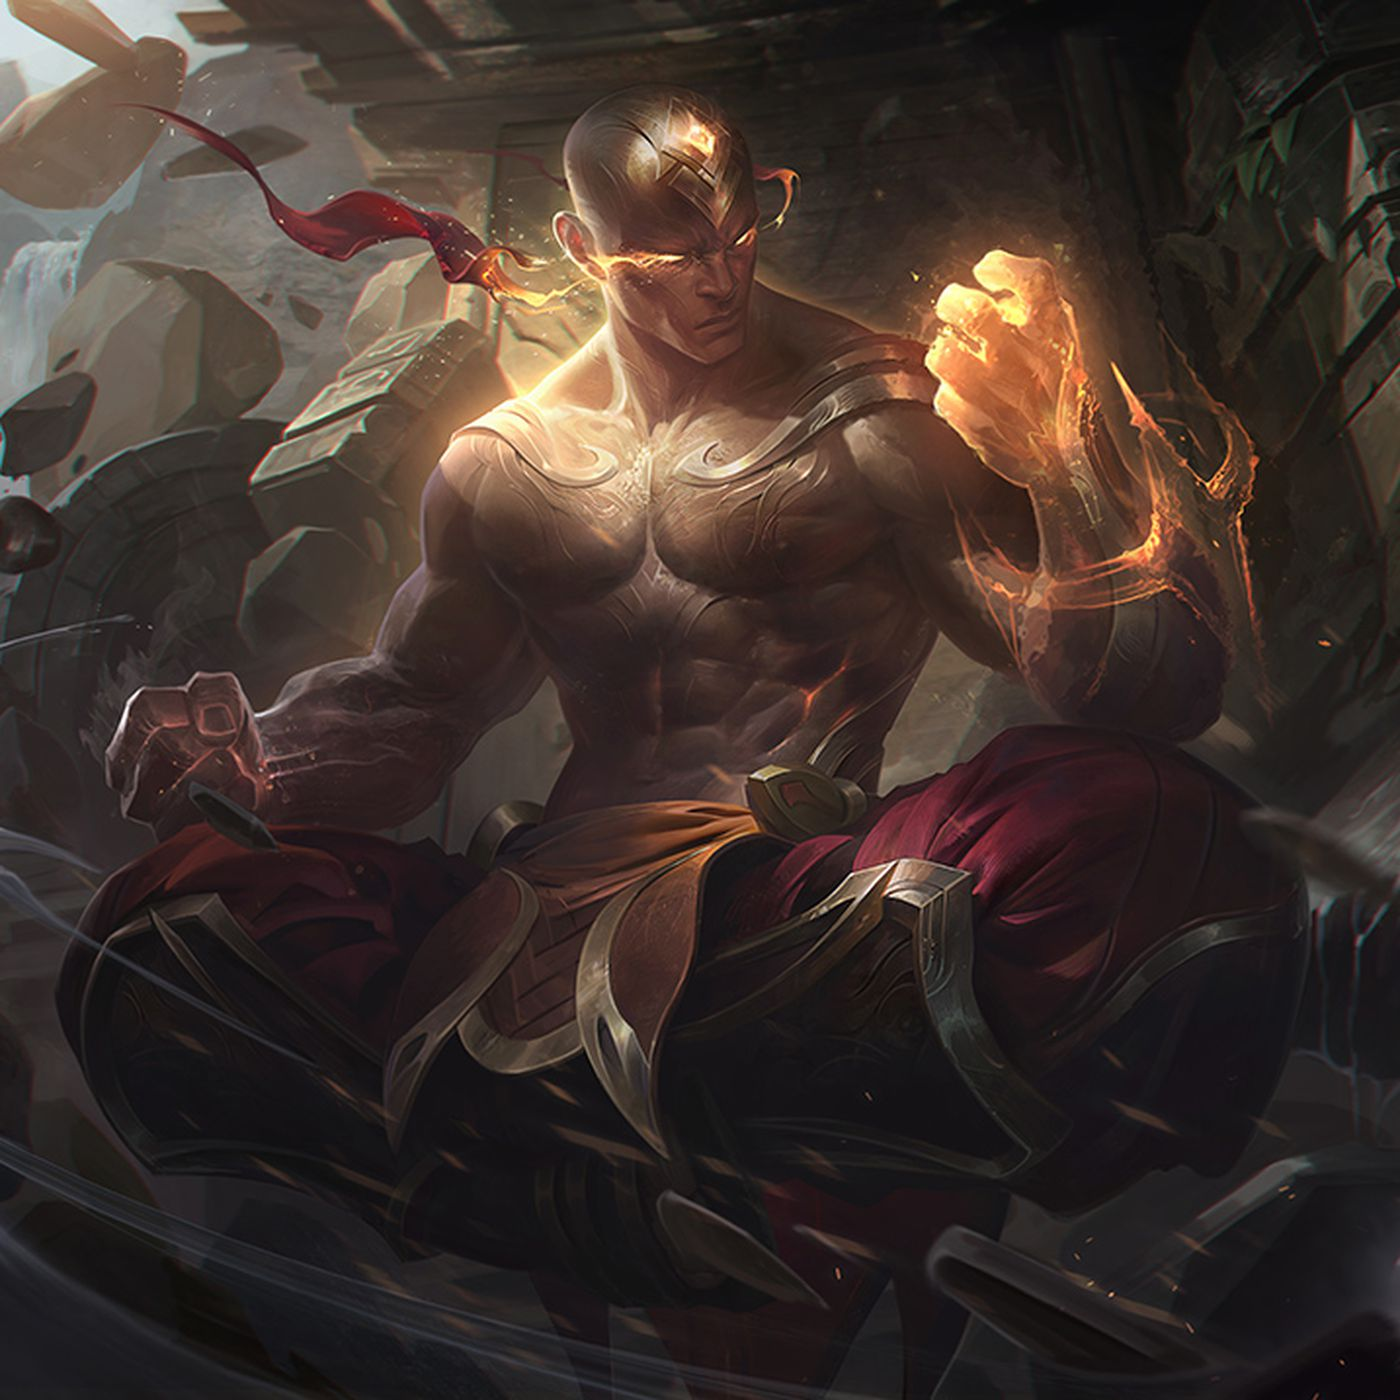 New Lee Sin skin: God Fist is shiny, golden and can see - The Rift